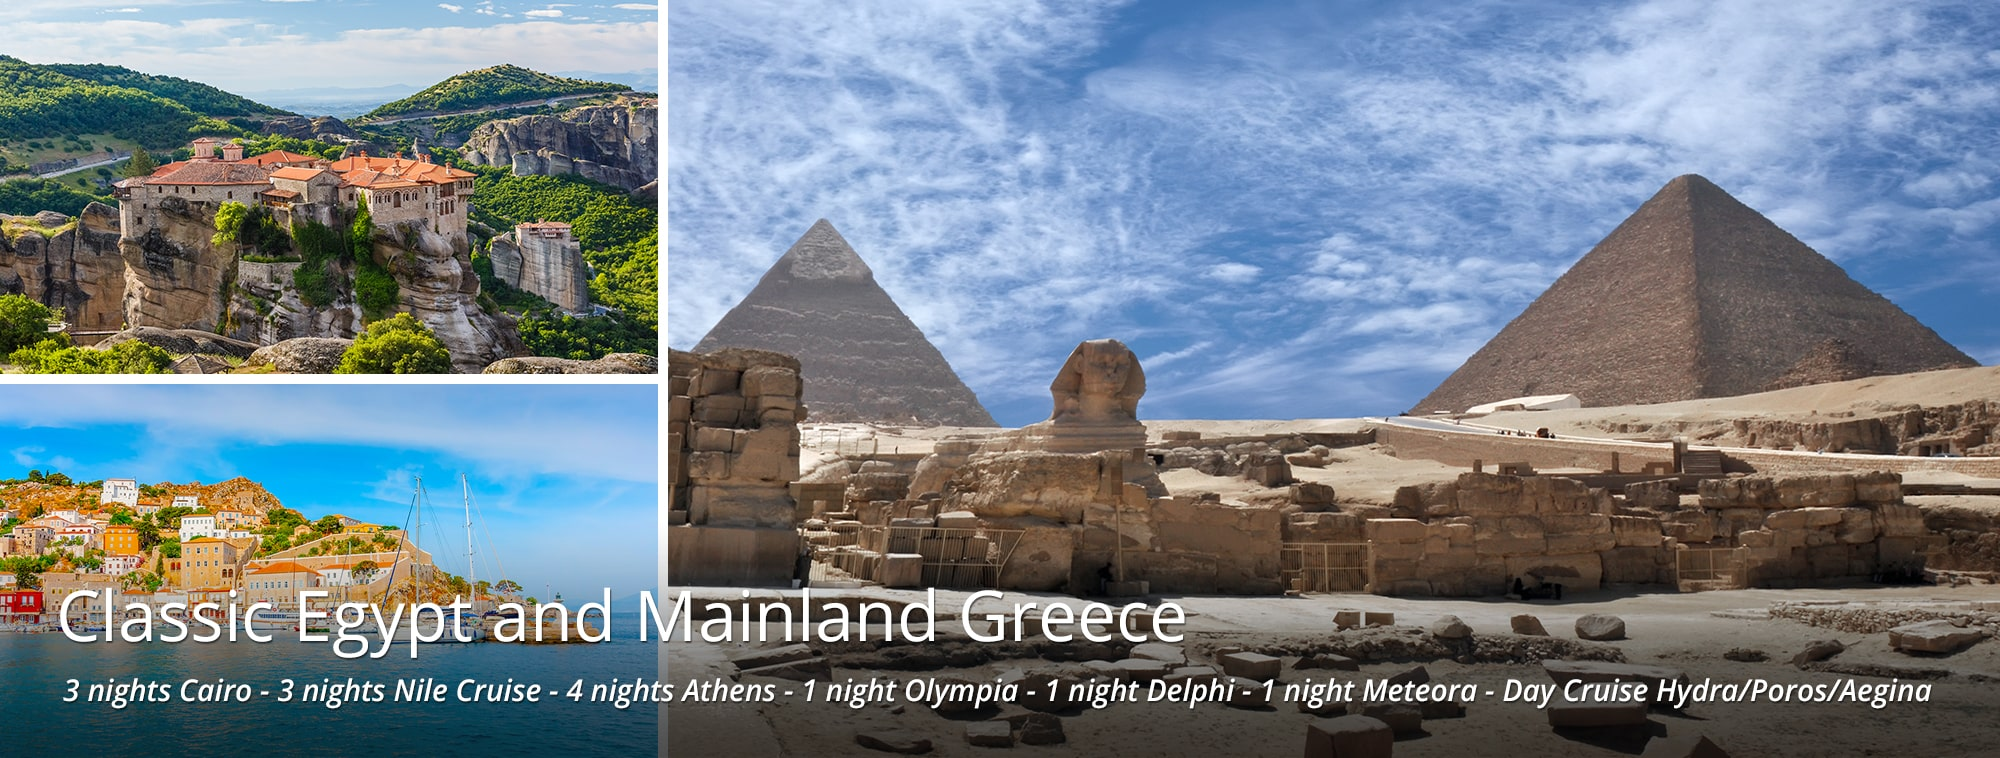 Classic Egypt and Mainland Greece Tour